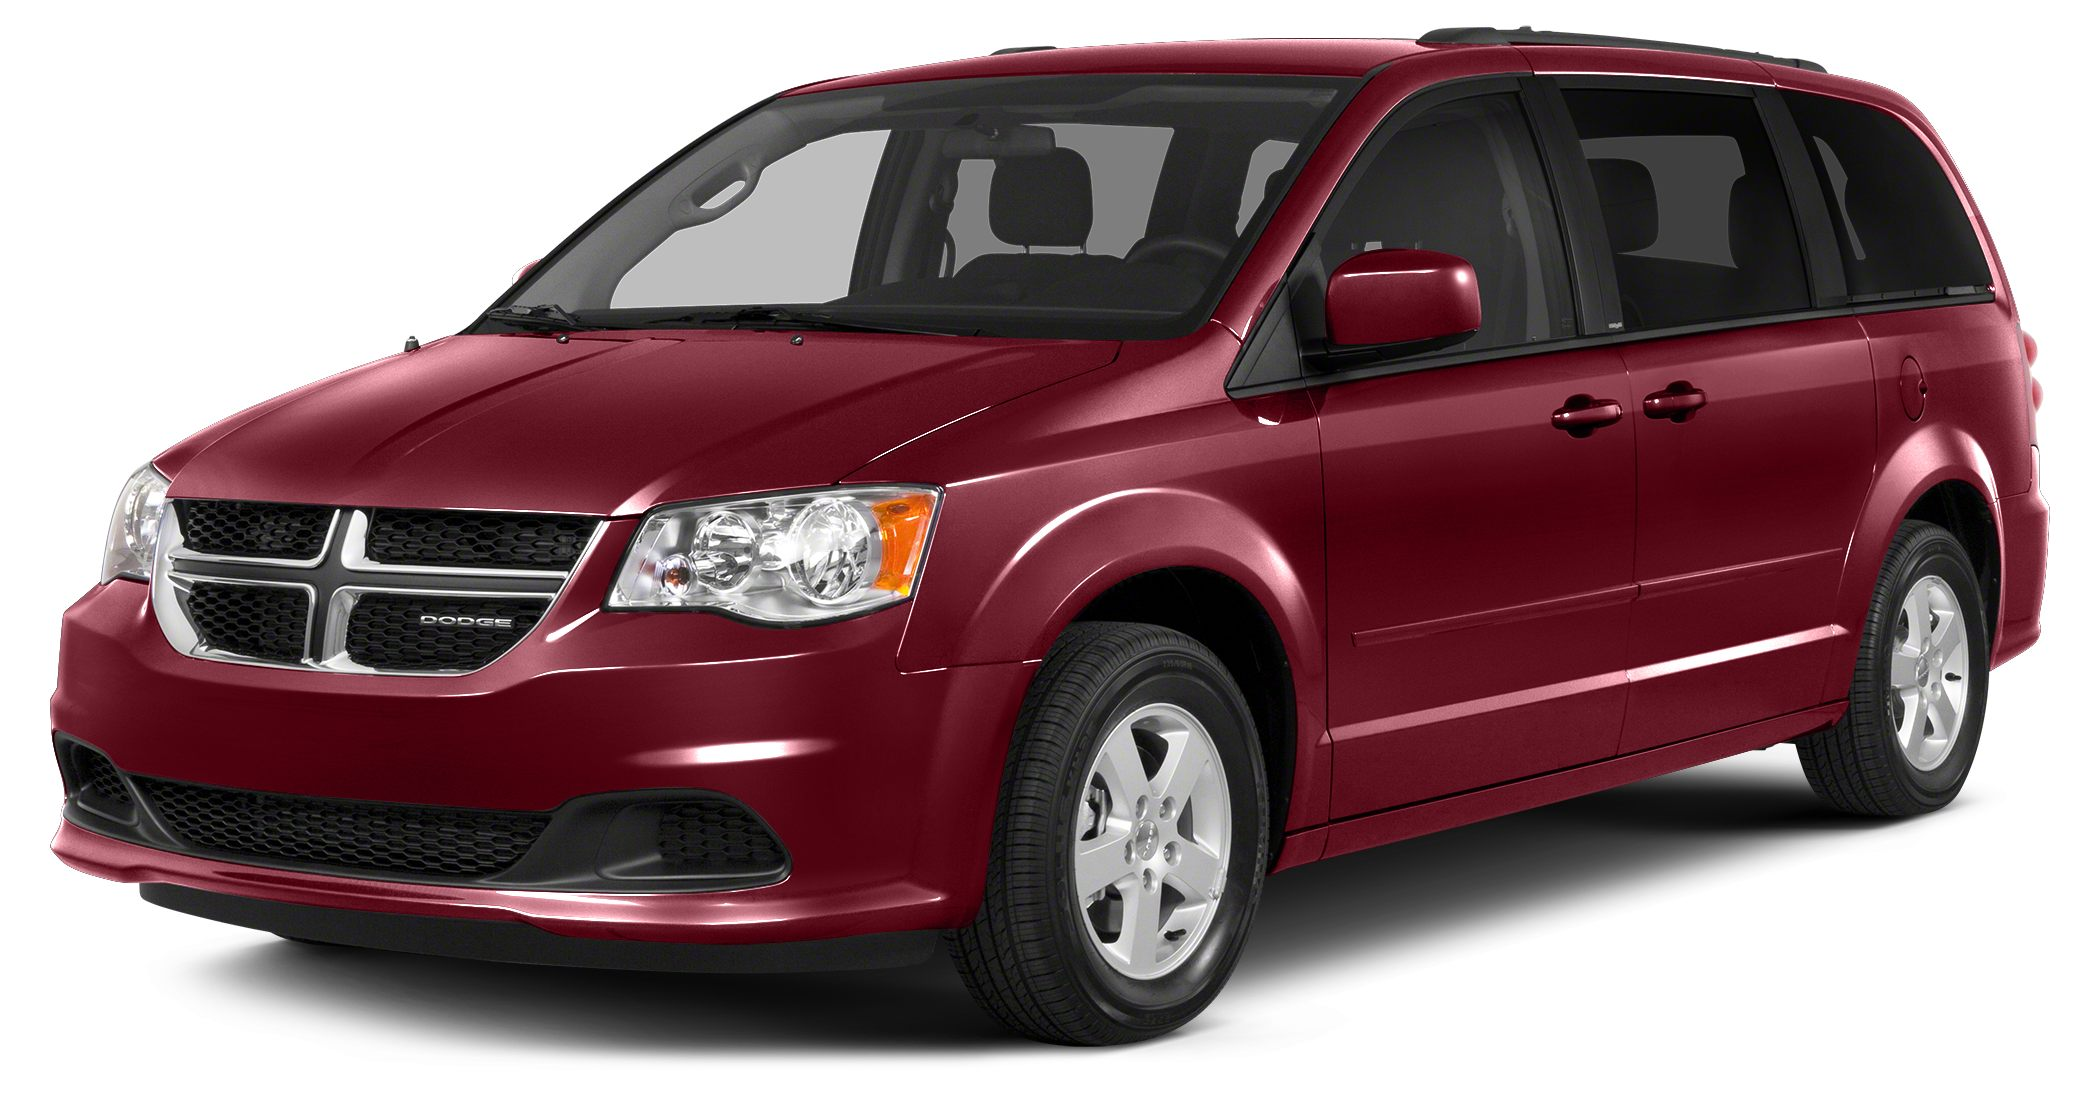 2012 Dodge Grand Caravan SXT New Inventory Move quickly Priced below KBB Retail Why pay more